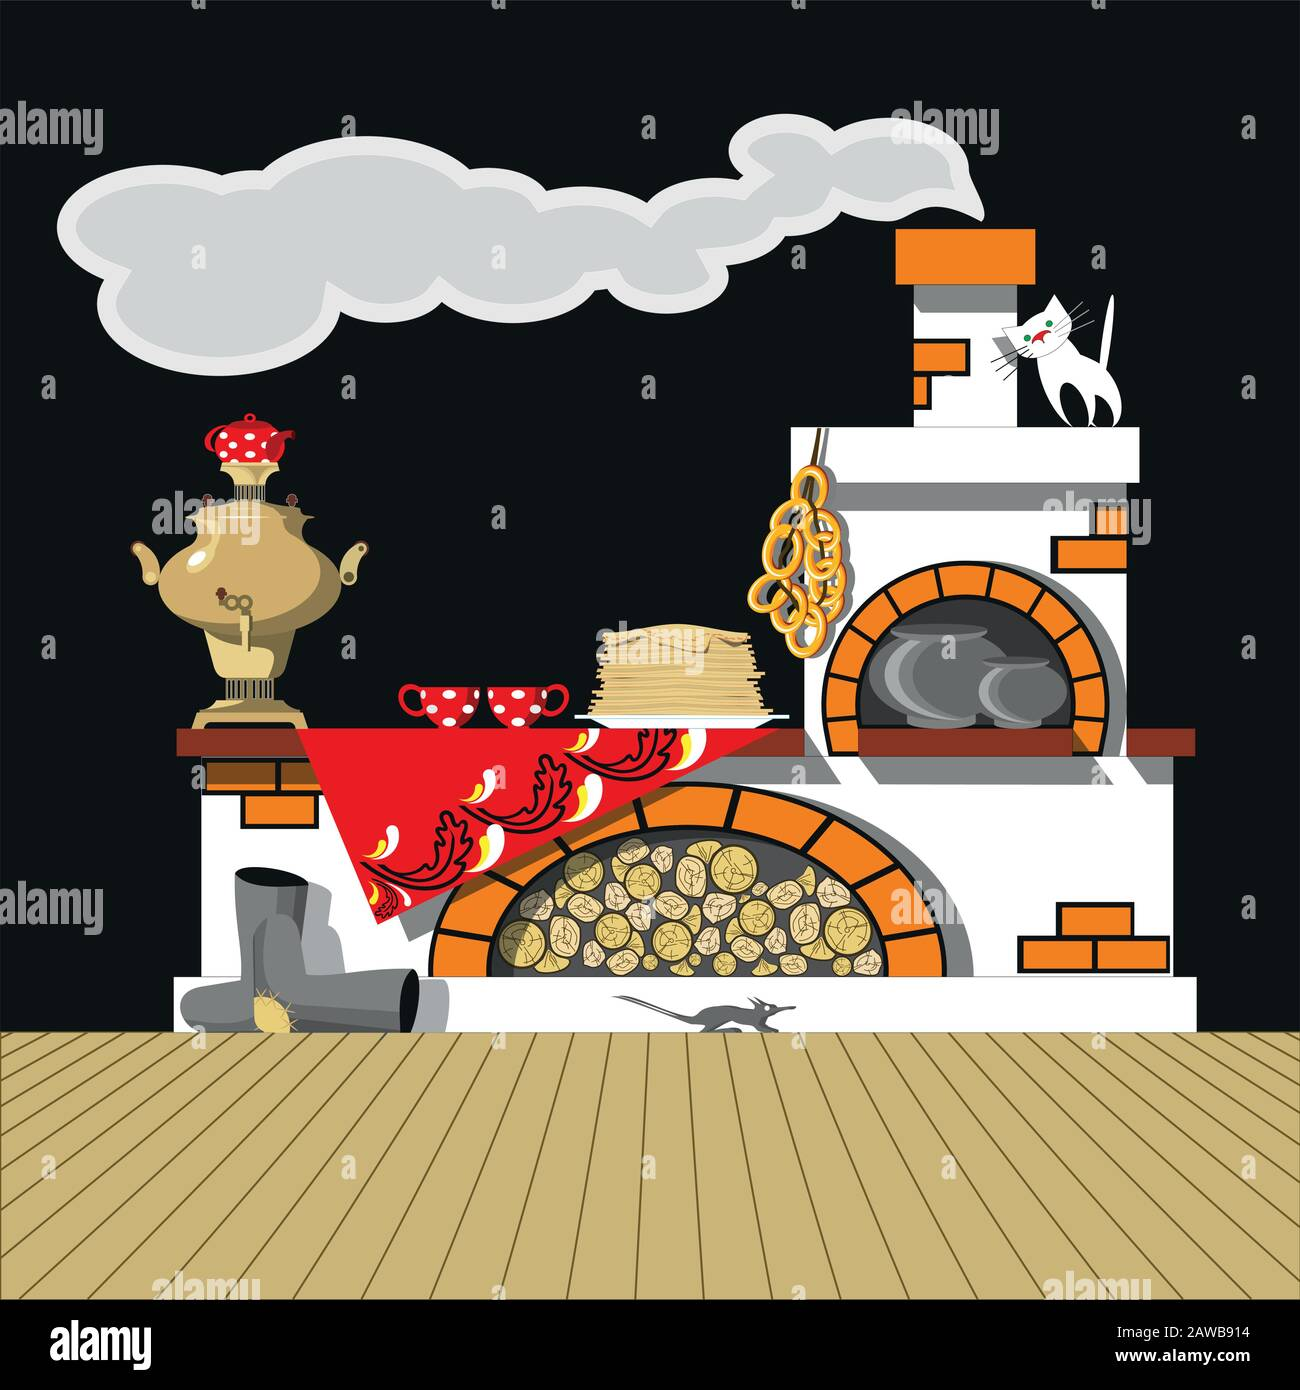 Russian oven, samovar, pancakes, bagels, felt boots. Vector set for decoration of the Russian holiday Maslenitsa. Shrovetide Stock Vector